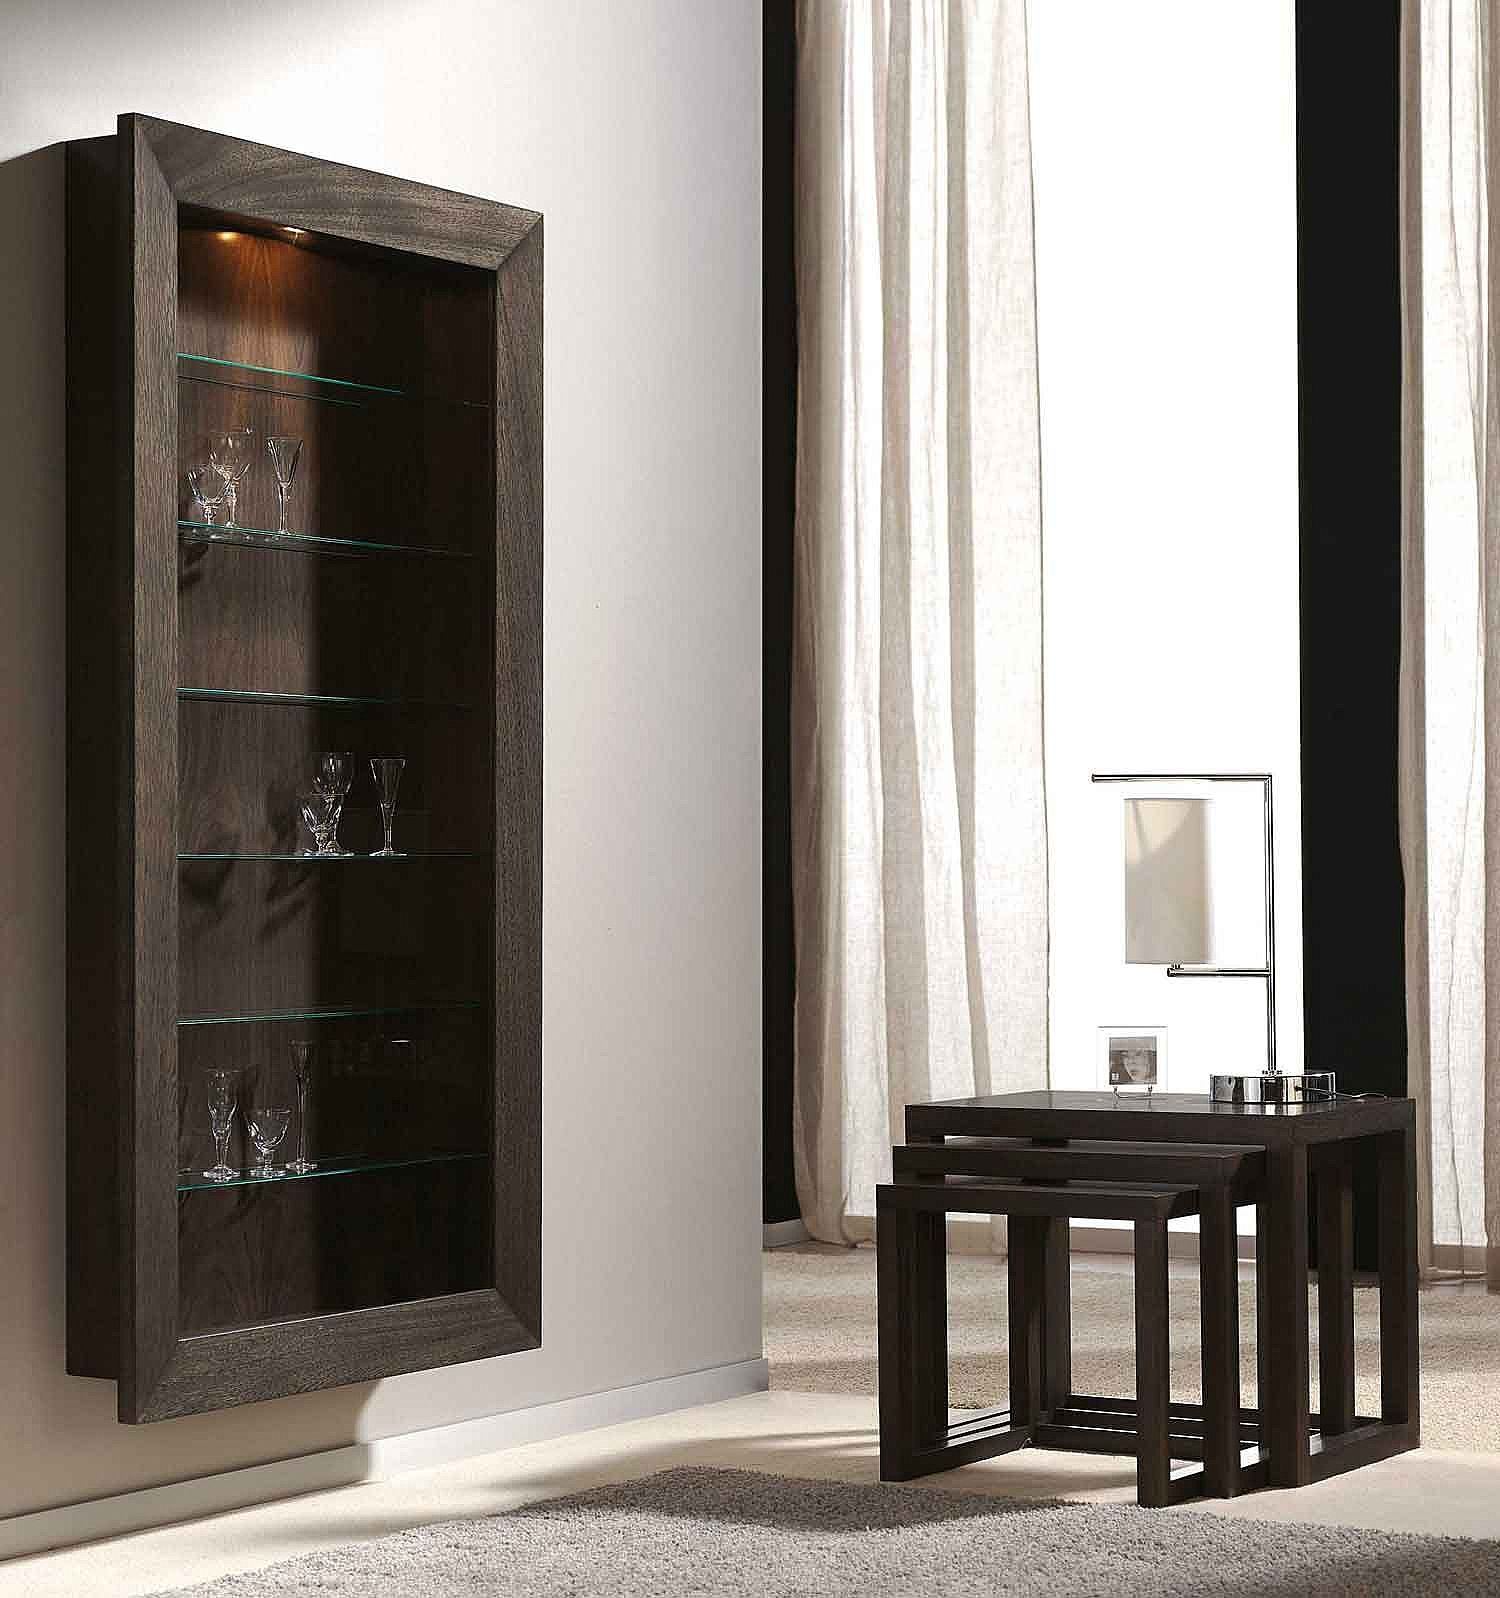 shelf white of vanity gallery cabinet plus tower design inspirations in storage related the pertaining with tap thumbnail small shallow see bellow bathroom to wall